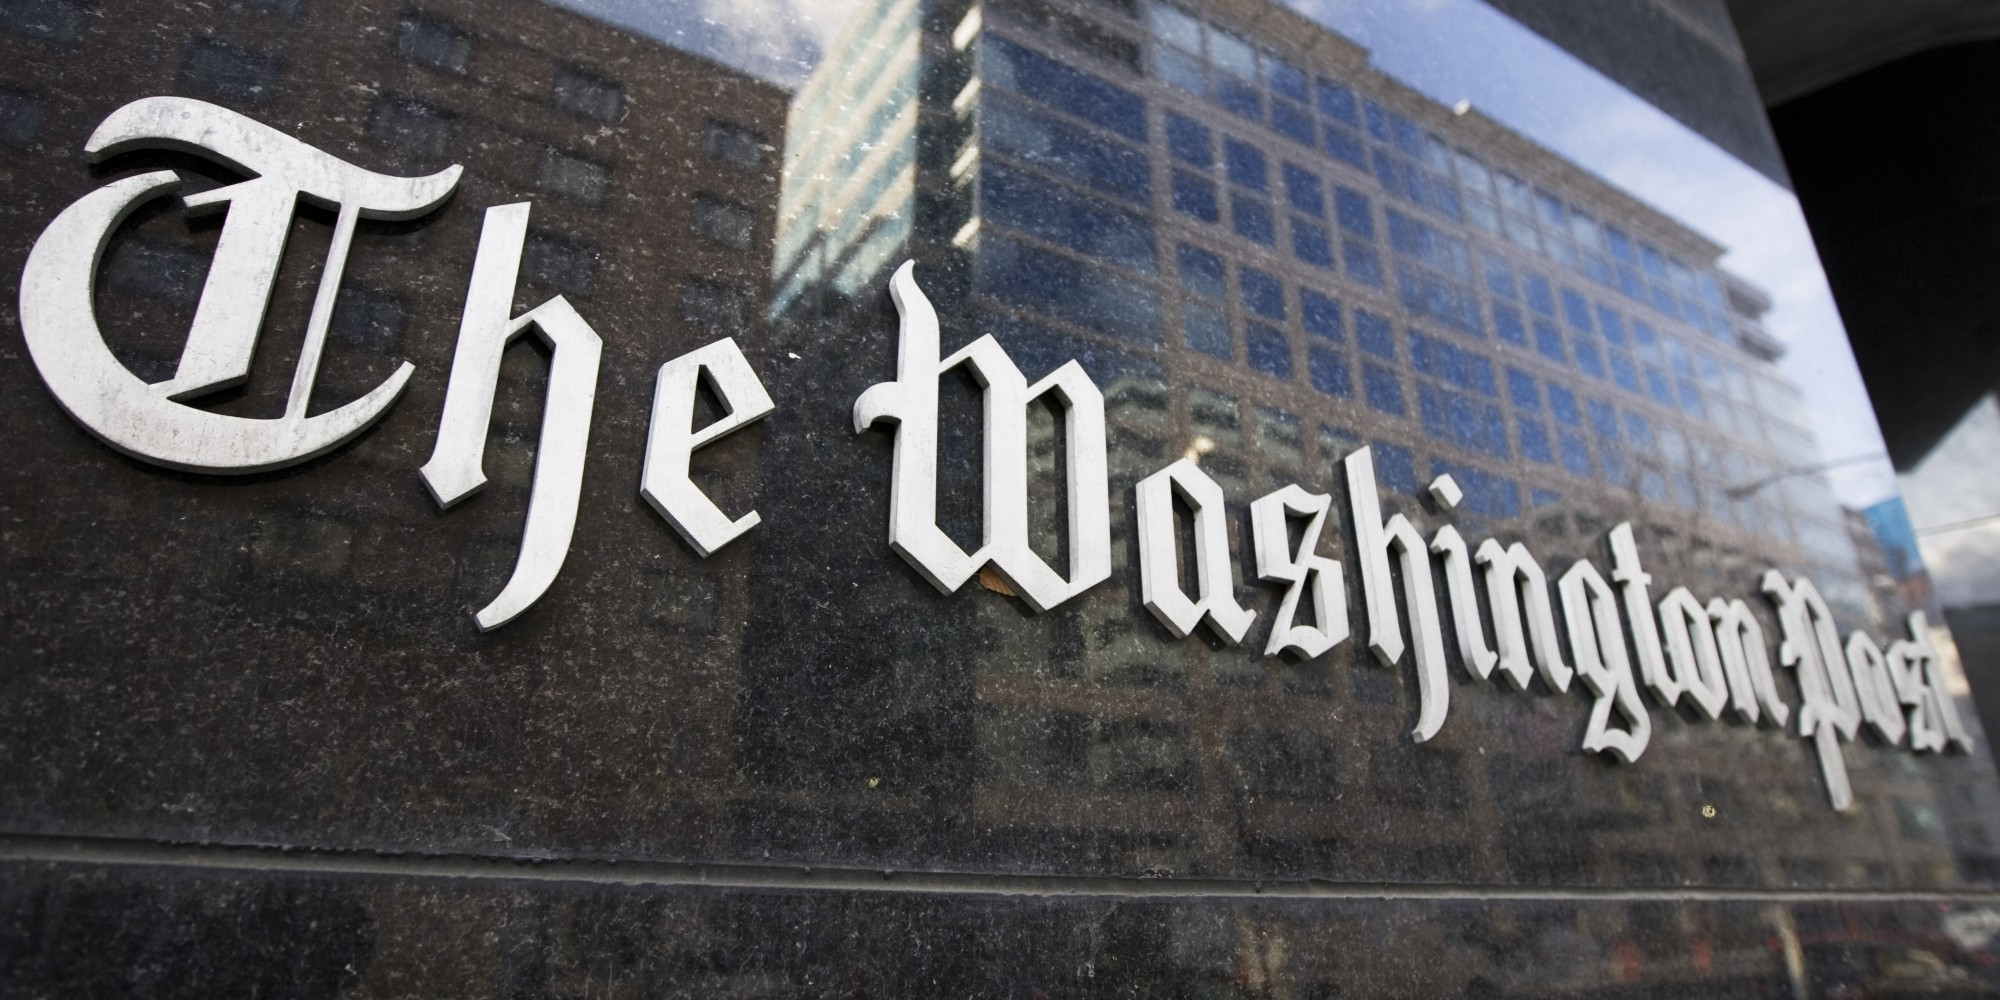 Washington Post: Mocking Conspiracy Theories While Creating Their Own